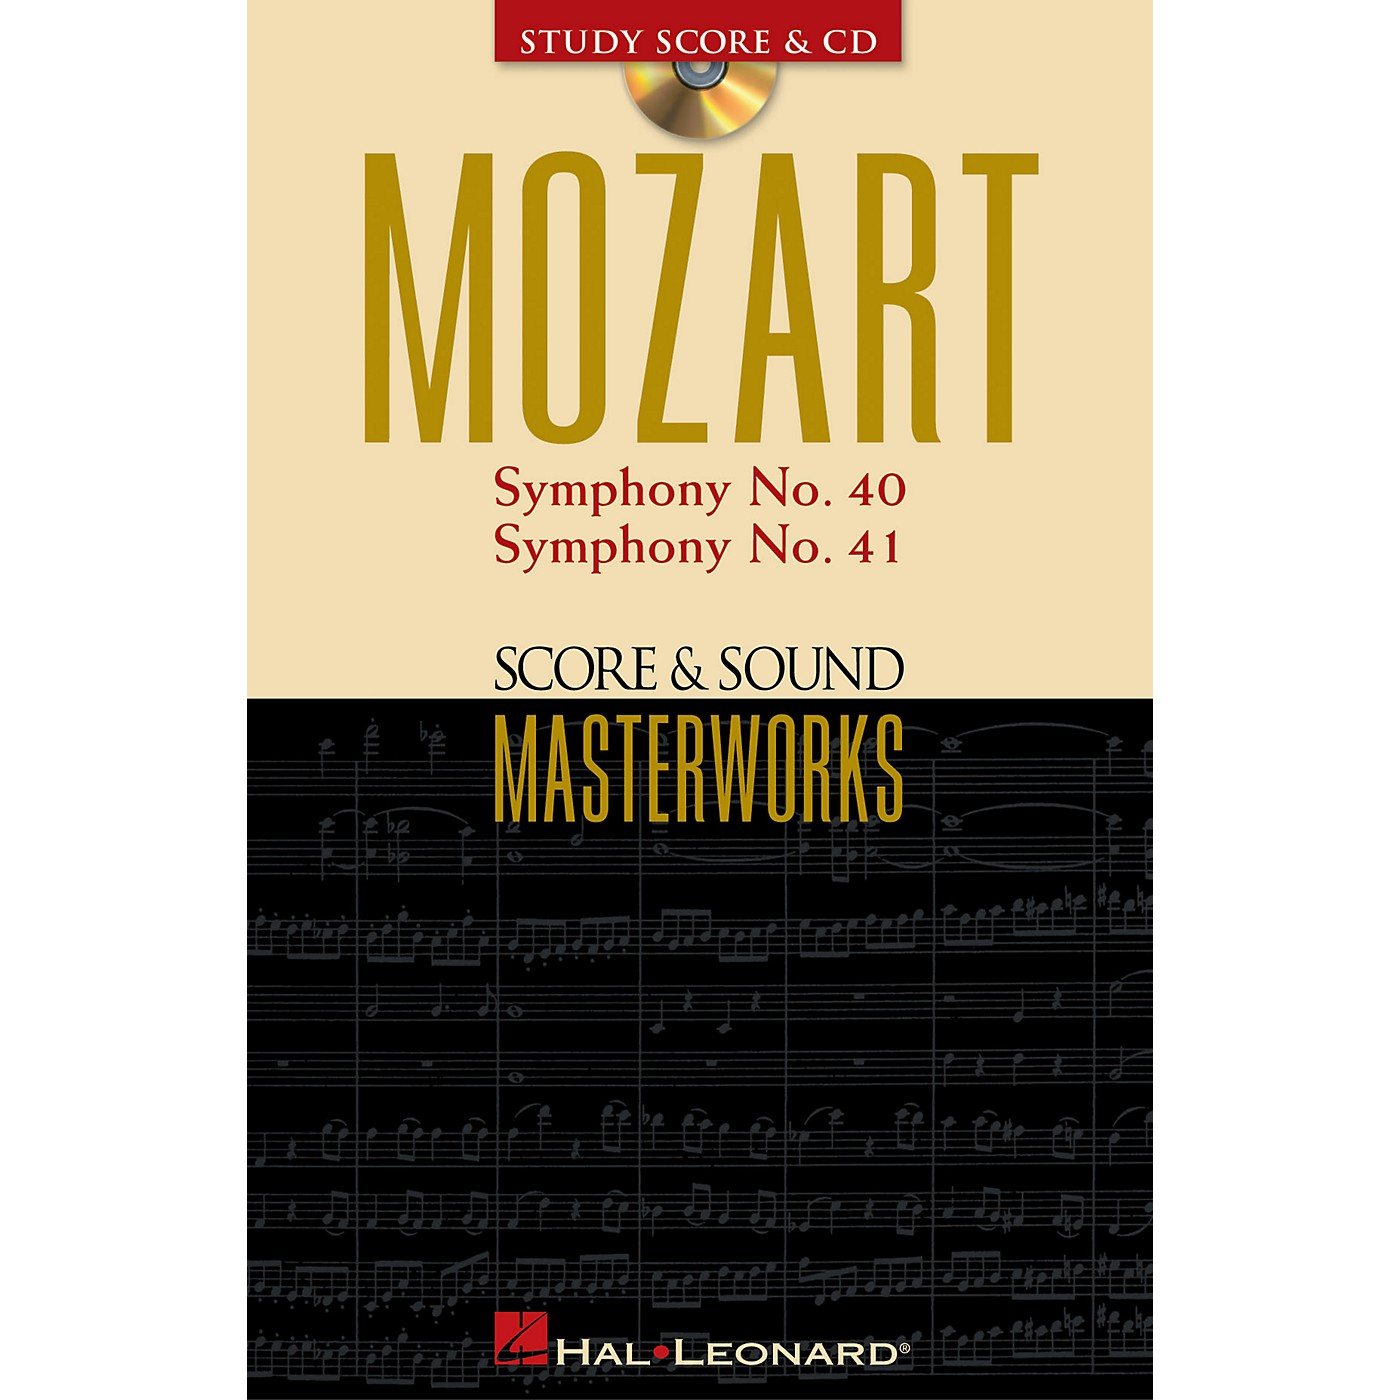 Hal Leonard Mozart - Symphony No. 40 in G Minor/Symphony No. 41 in C Major Study Score with CD by Mozart thumbnail